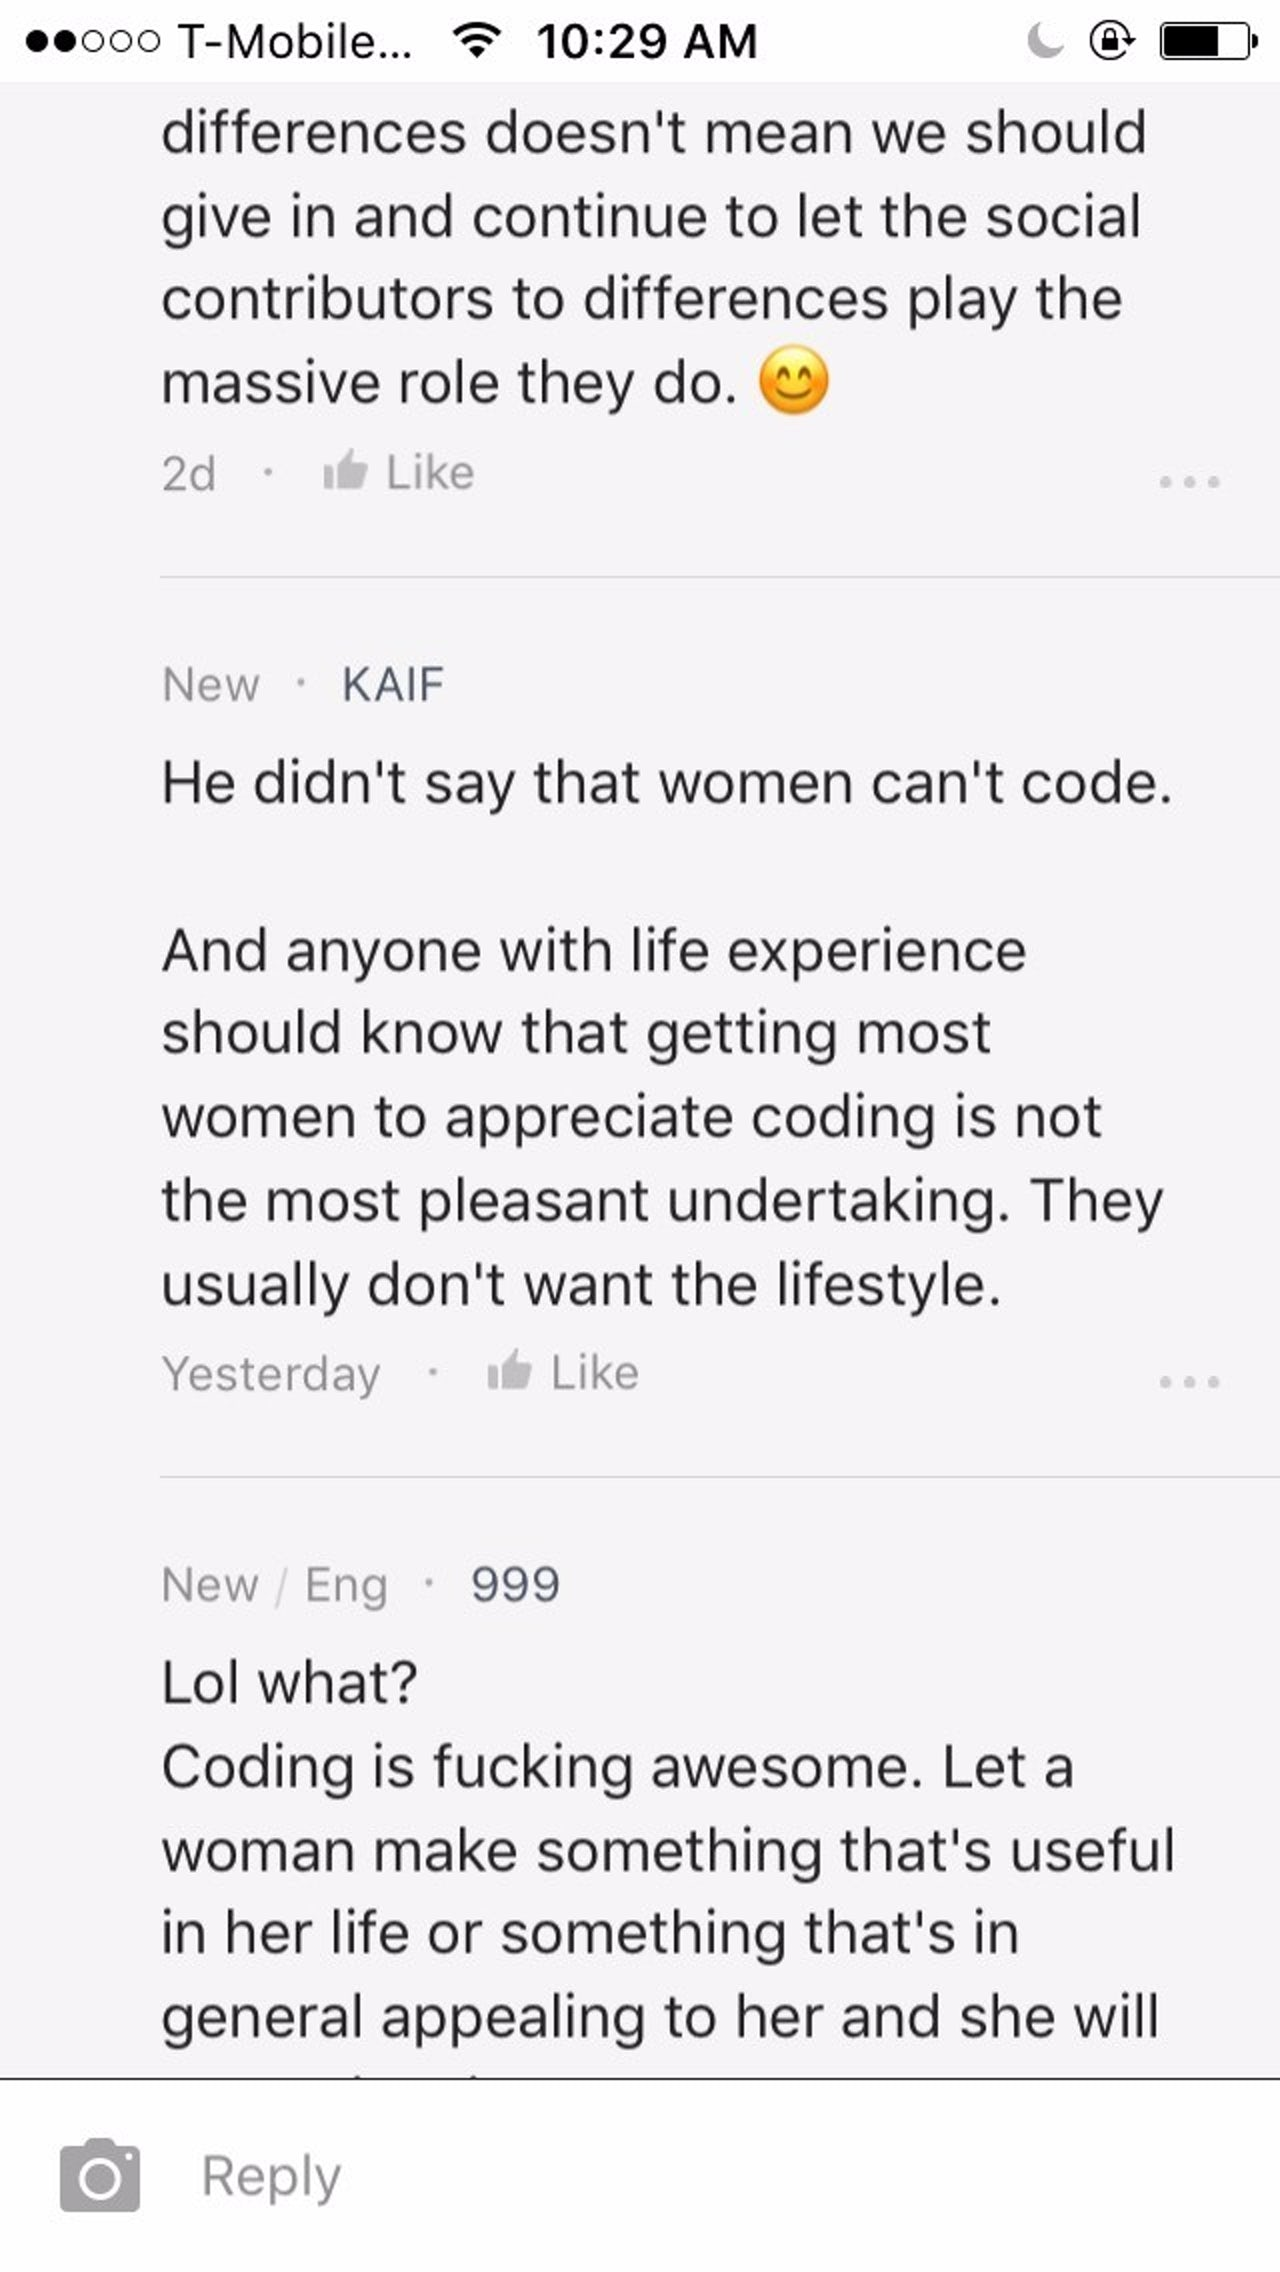 Another screenshot from the same thread on Blind.